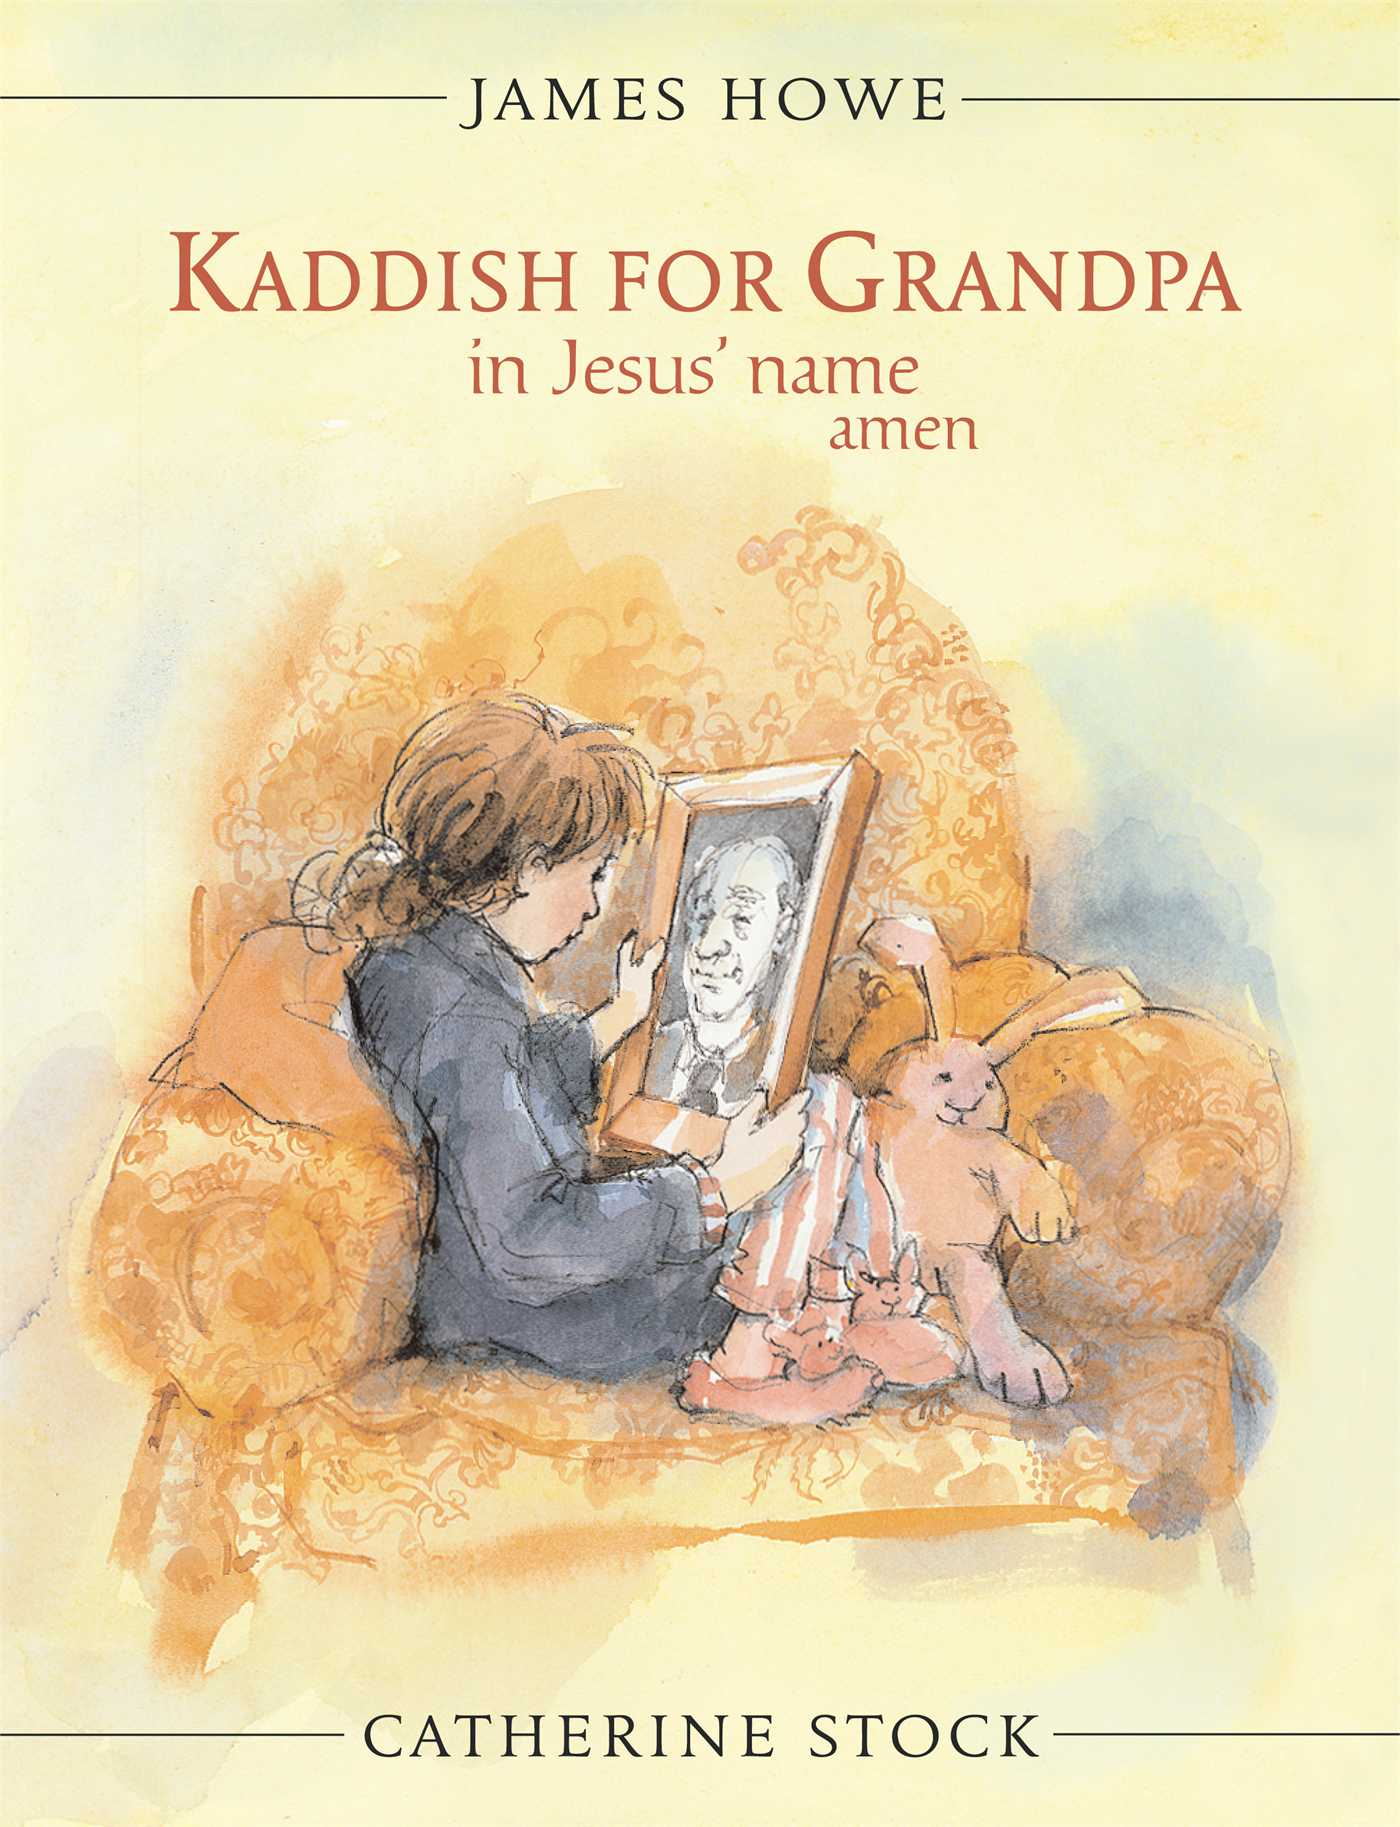 Kaddish-for-grandpa-in-jesus-name-amen-9781481417921_hr